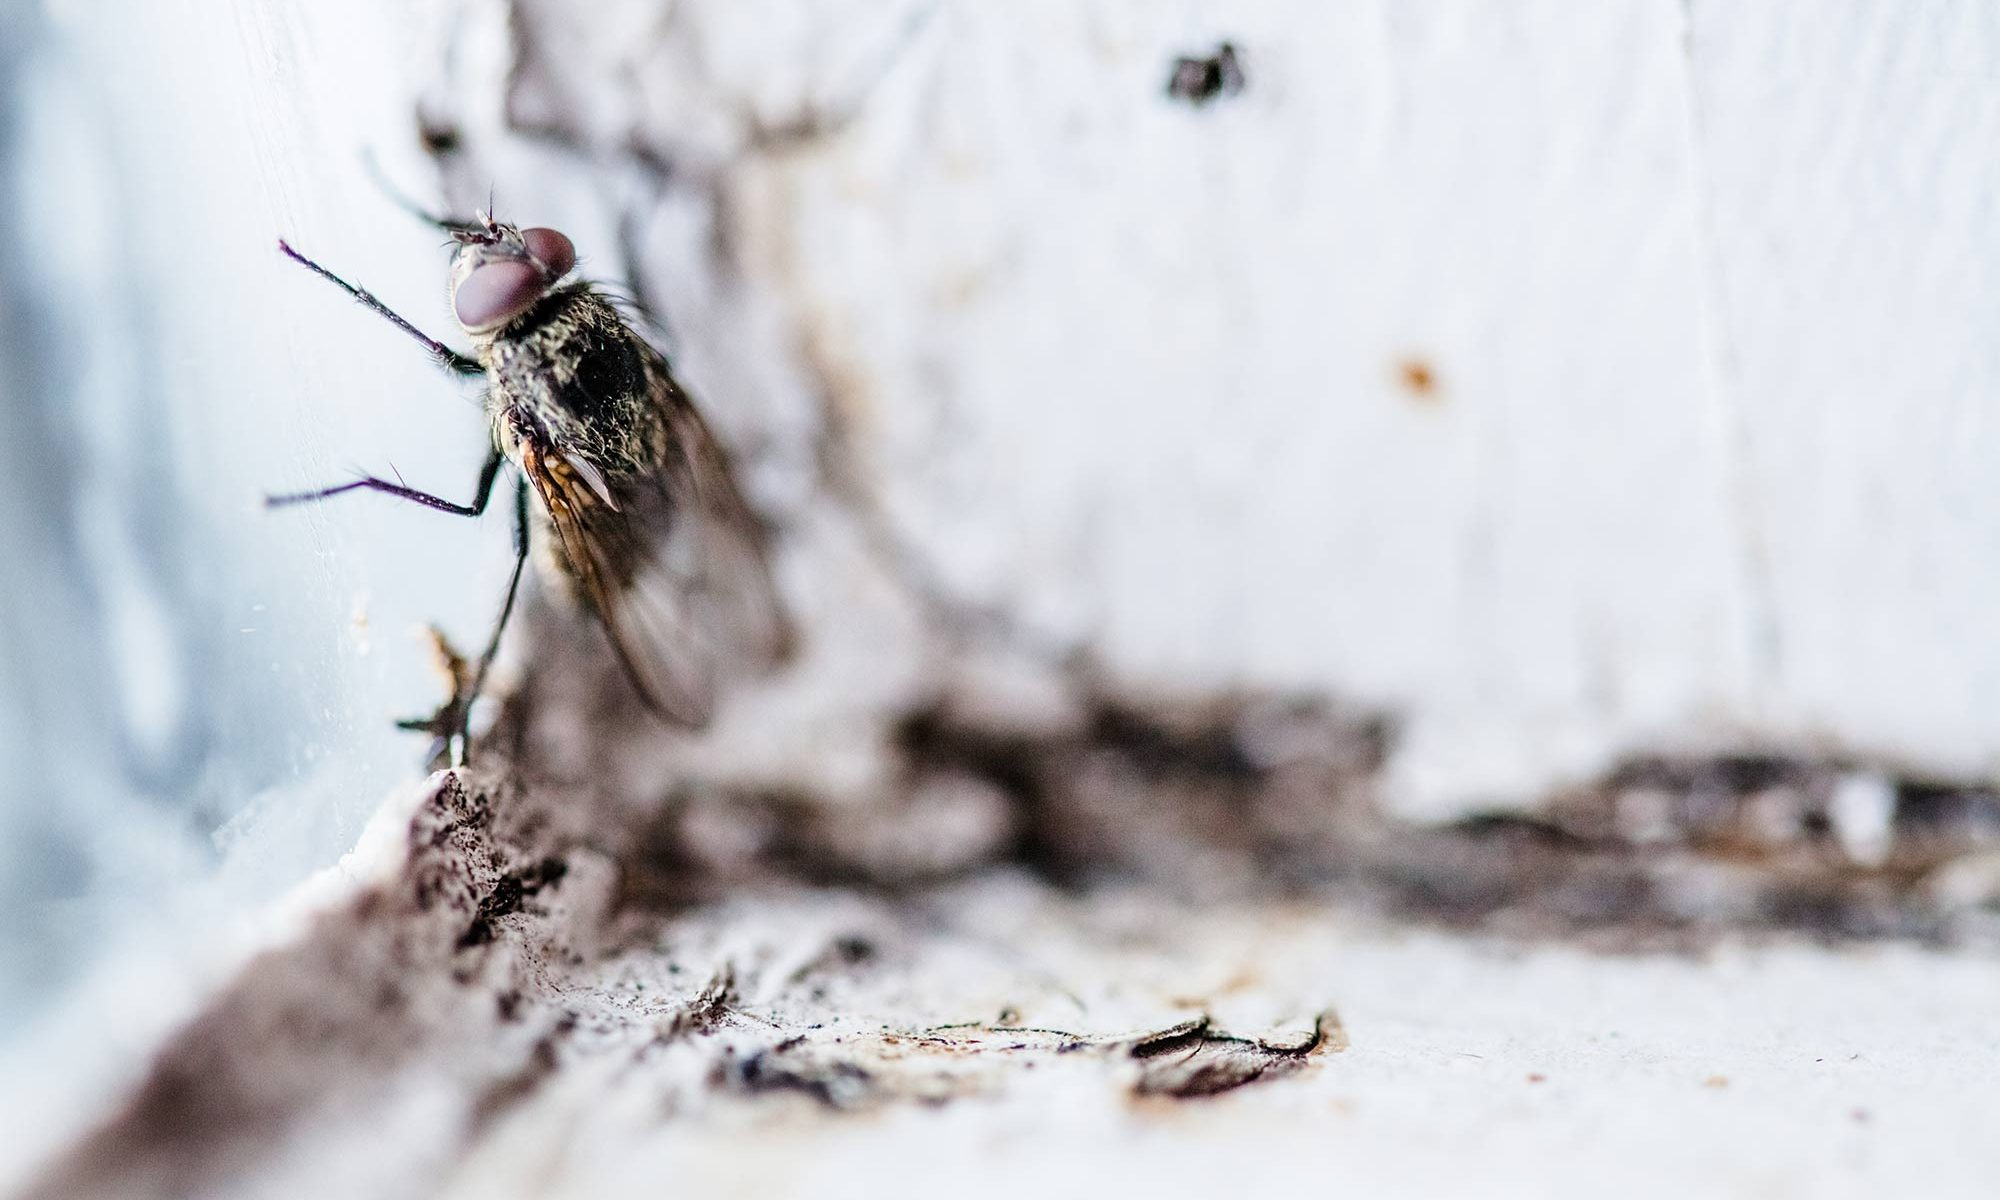 fly at a window sill - pests in your home